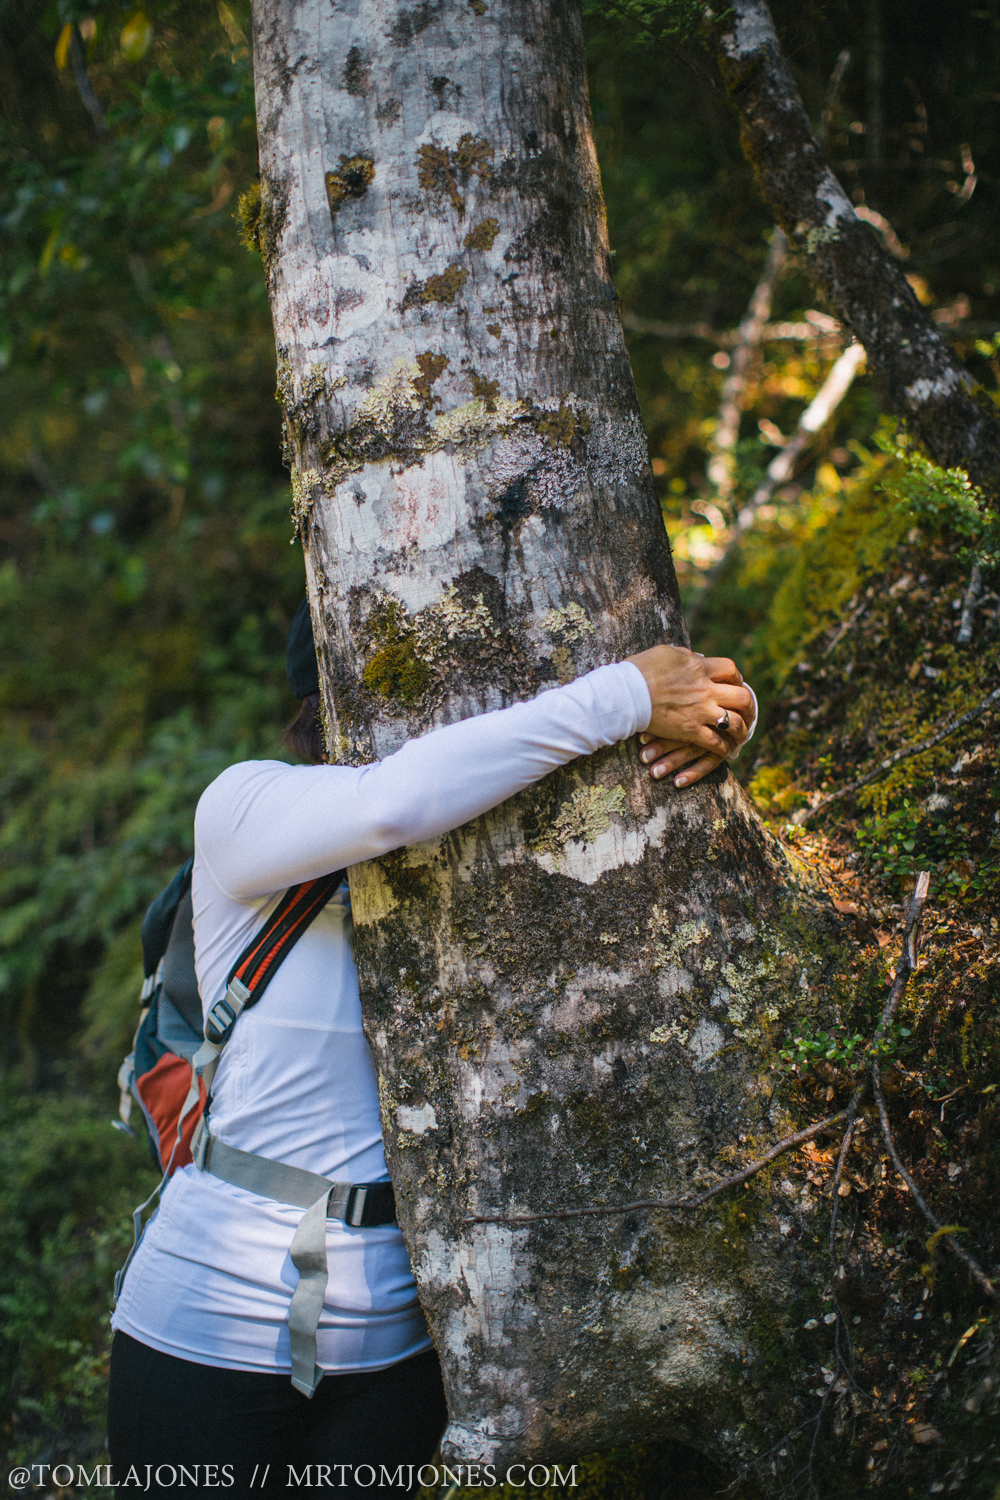 Hug a tree, get tactile, see what difference it makes to your connection with your environment.